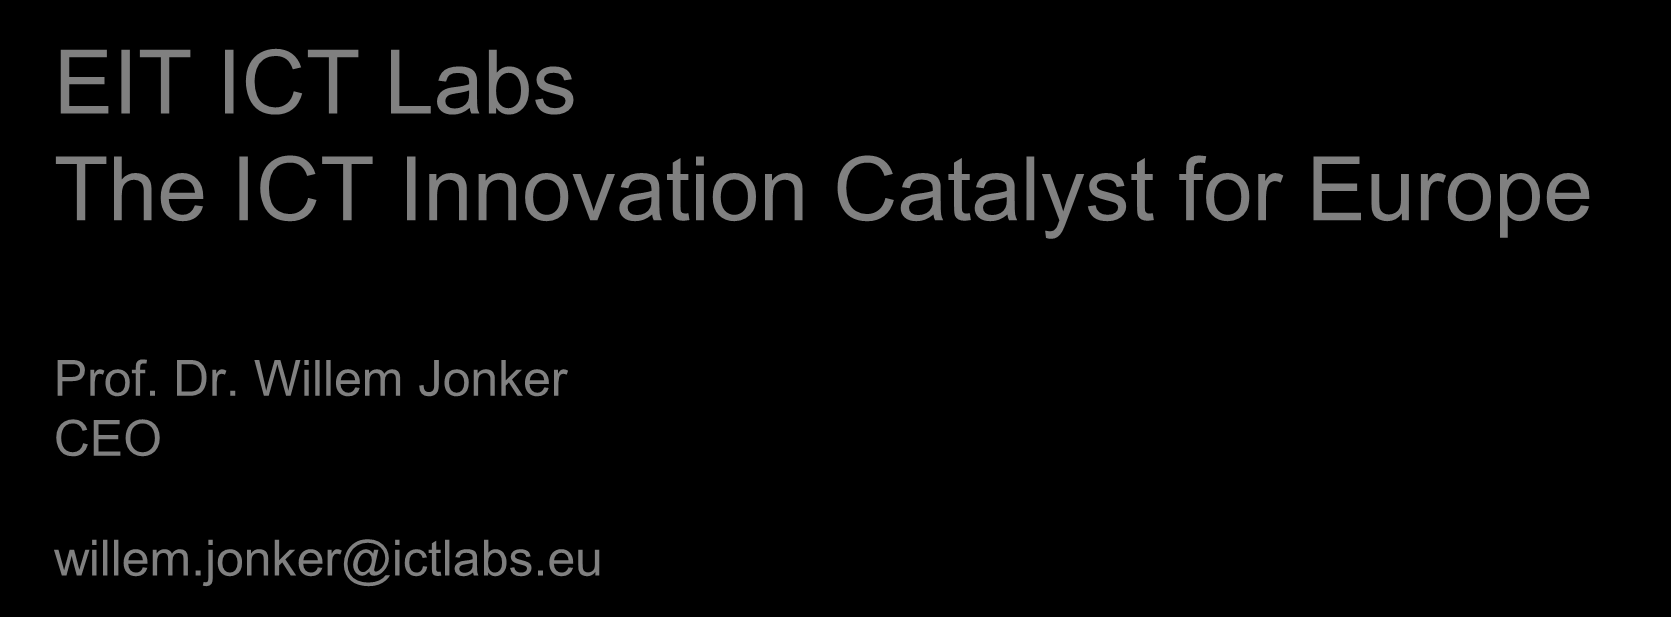 EIT ICT Labs The ICT Innovation Catalyst for Europe